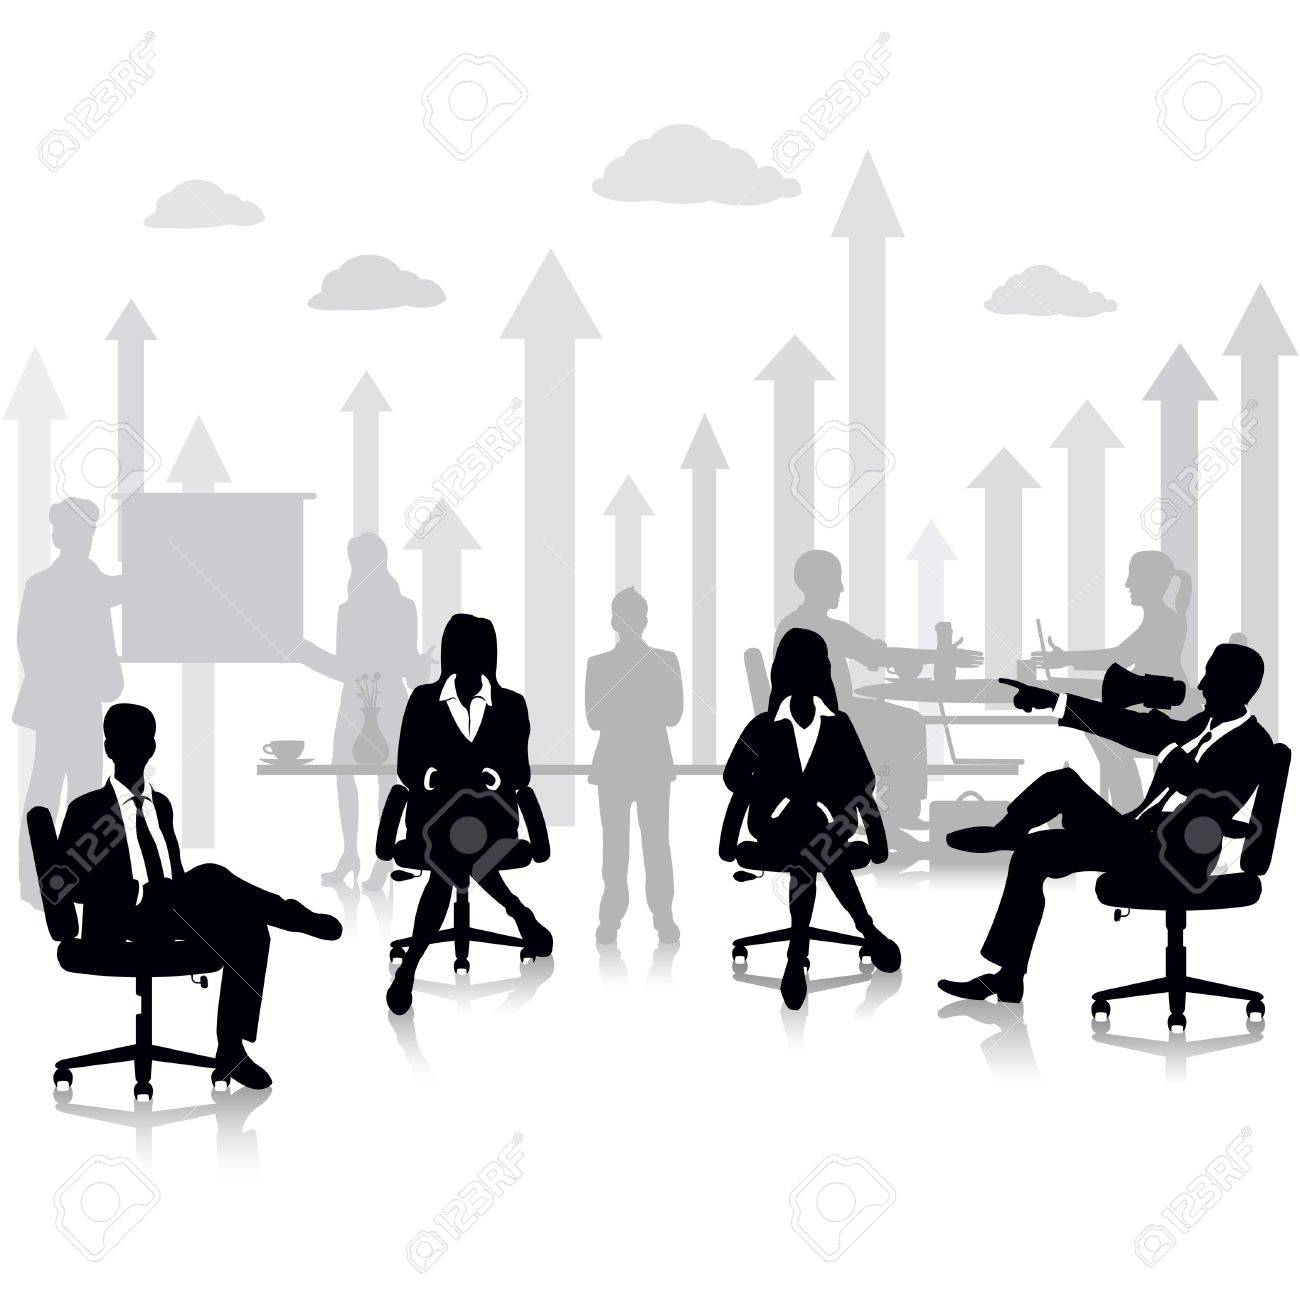 Business People in a Meeting Stock Vector - 18627651